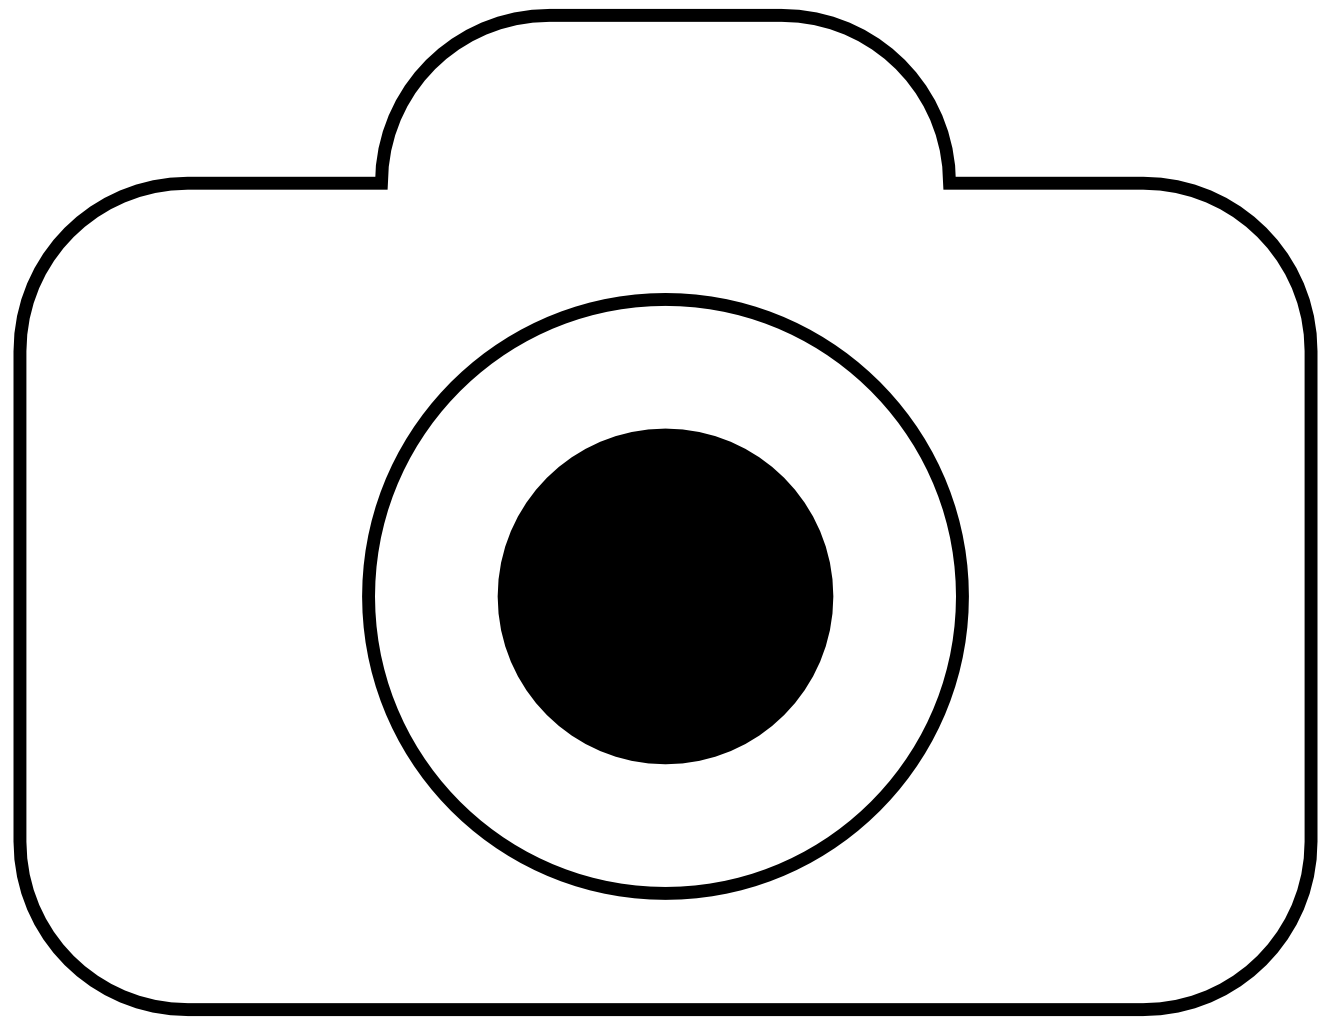 Black and white png. Square clipart camera